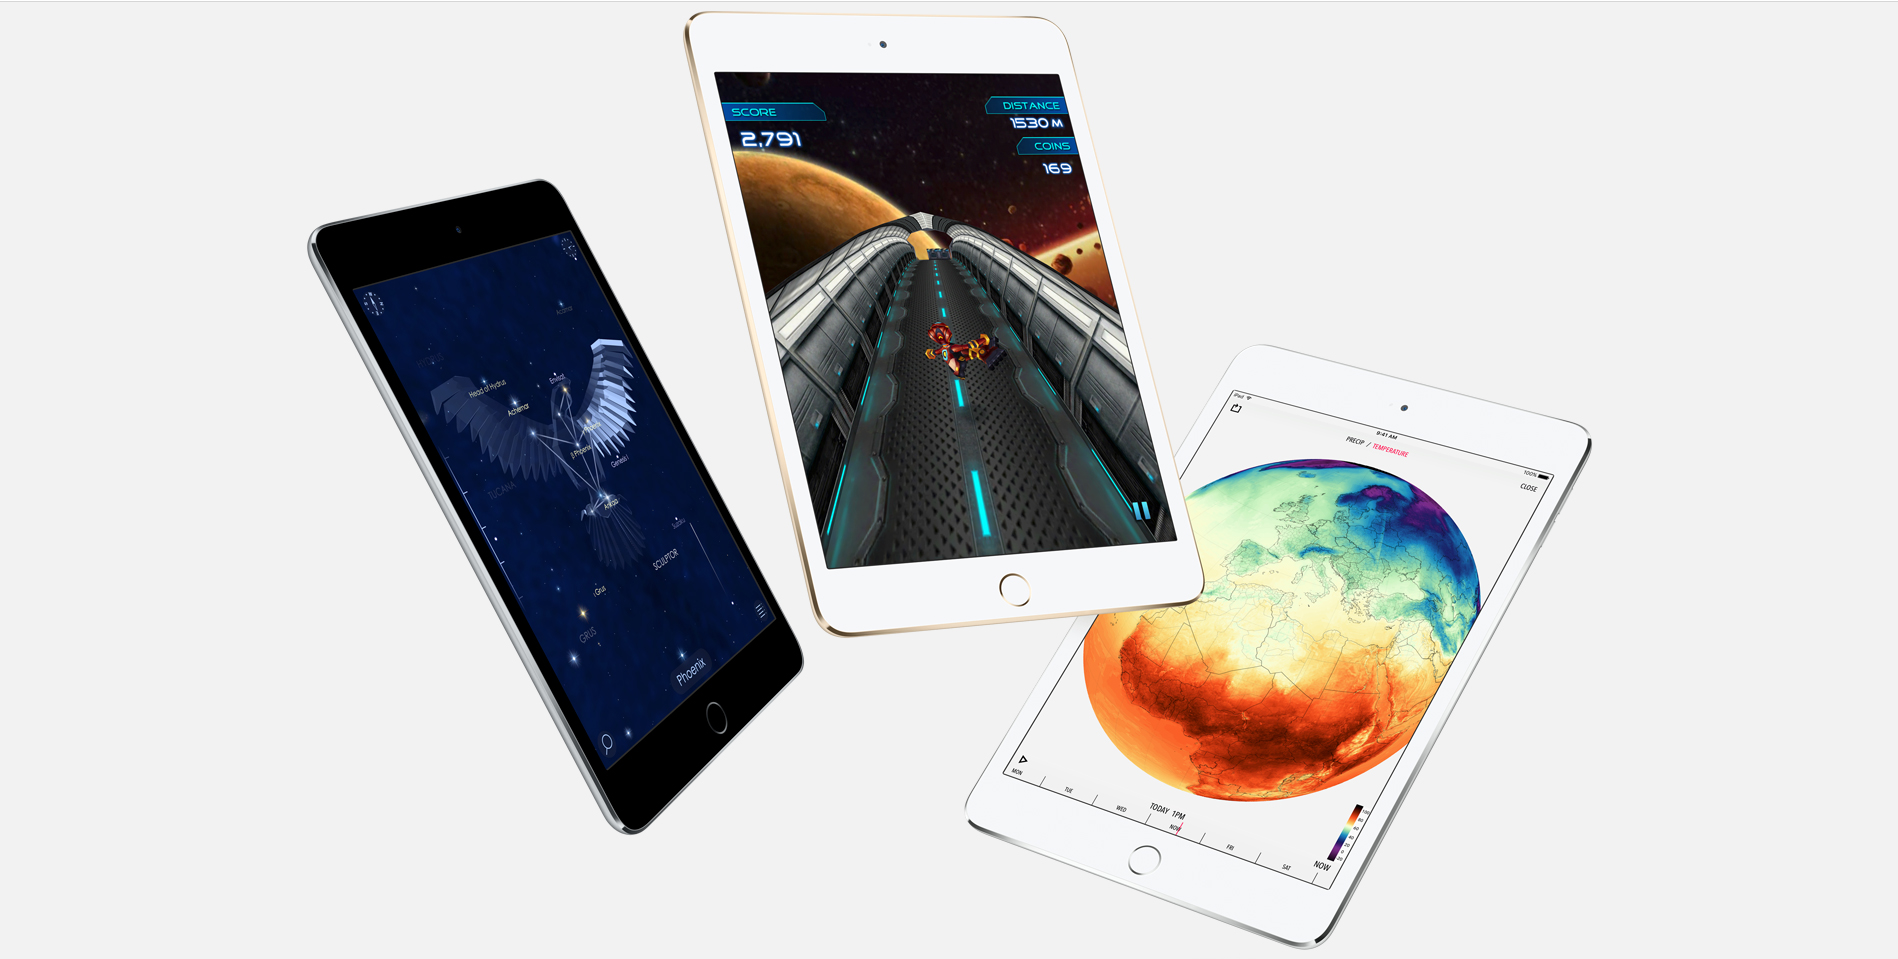 Just like the iPhone 6s and iPhone 6s Plus, the iPad mini 4 sports 2GB of RAM